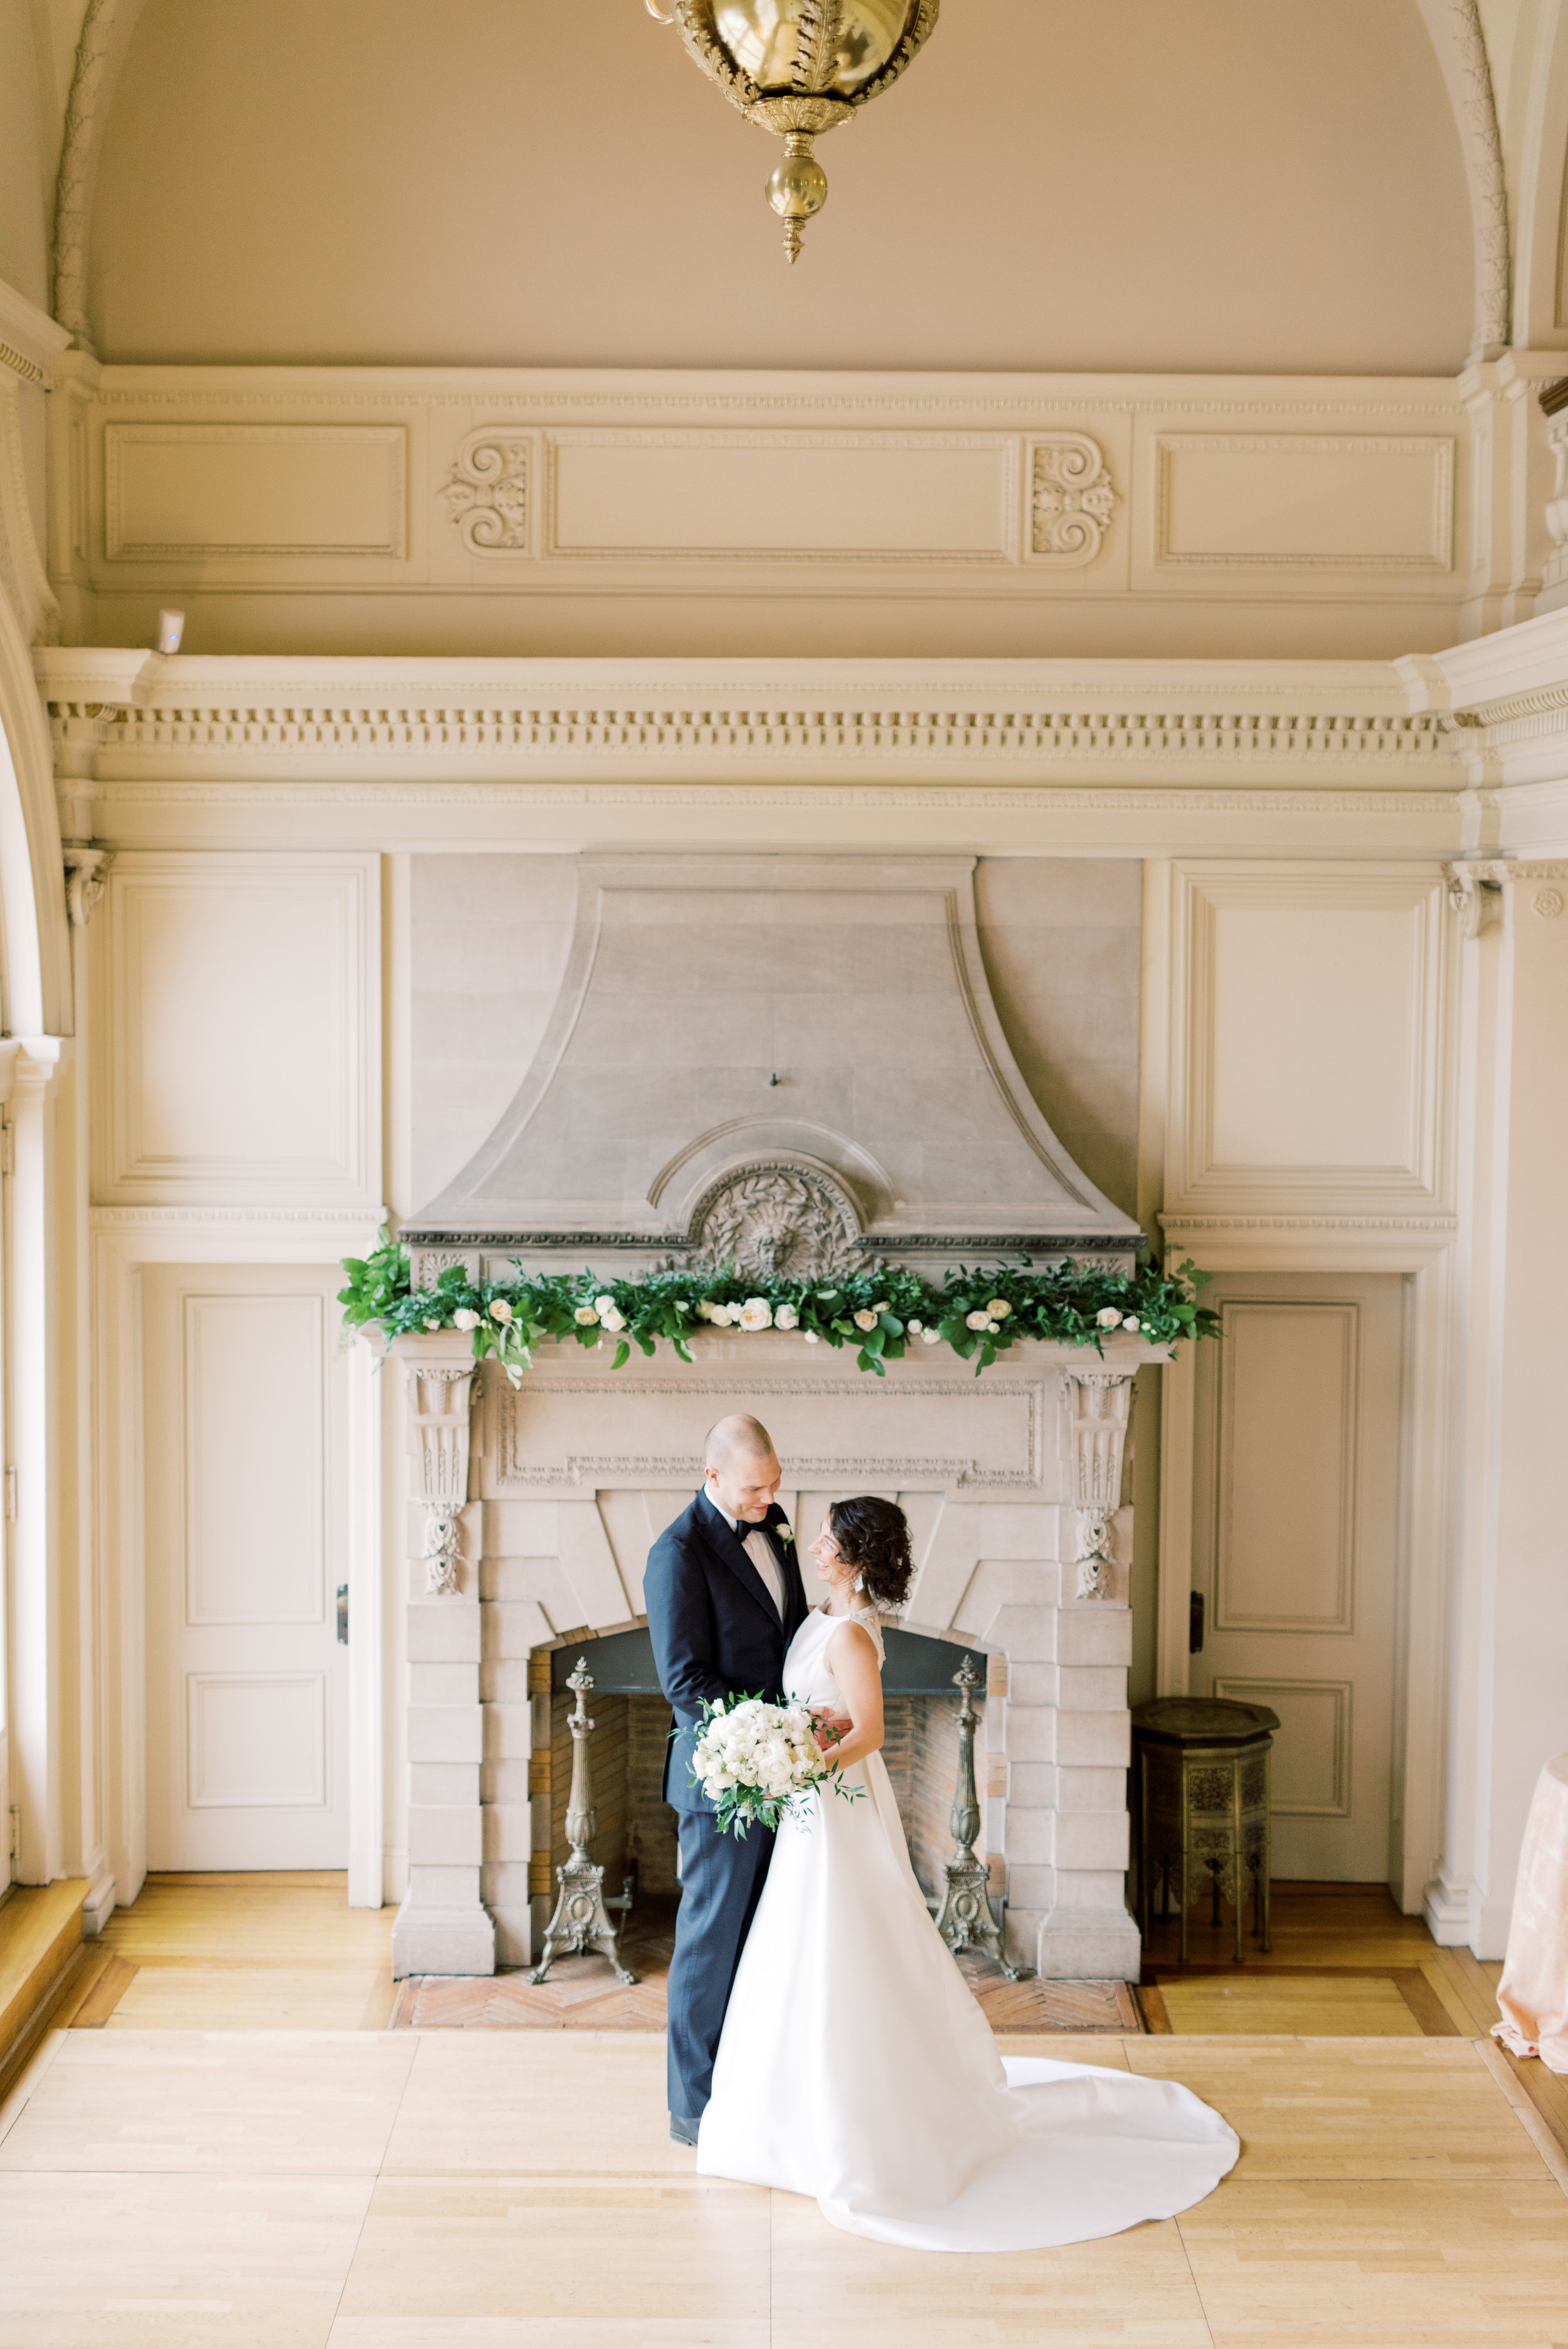 Our bride and groom in the great hall of this old French mansion were perfect for this romantic and classic wedding day for their french inspired green and white Cairnwood Estate wedding